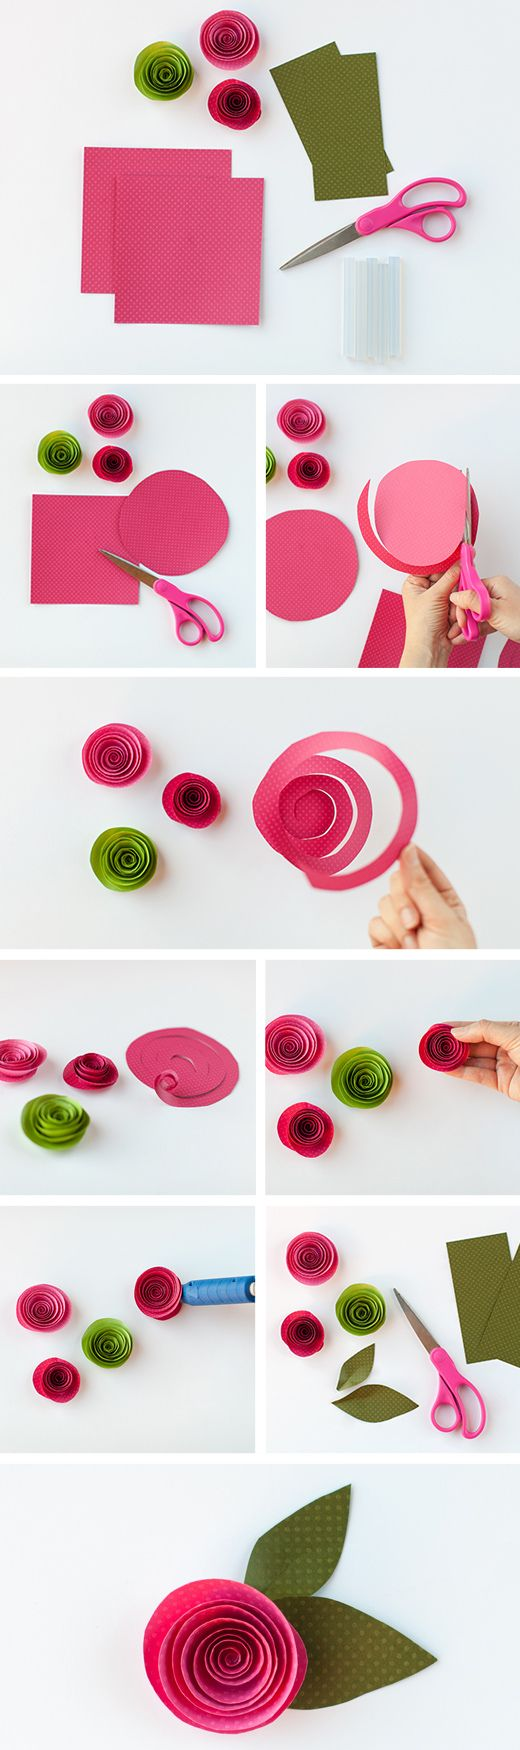 DIY Rolled Paper Flowers as seen in the Lilli Bell Sip & See styled by The TomKat Studio for Vera Bradley Baby! Full instructions here: http://insidestitch.com/2013/04/12/april-showers-part-3/